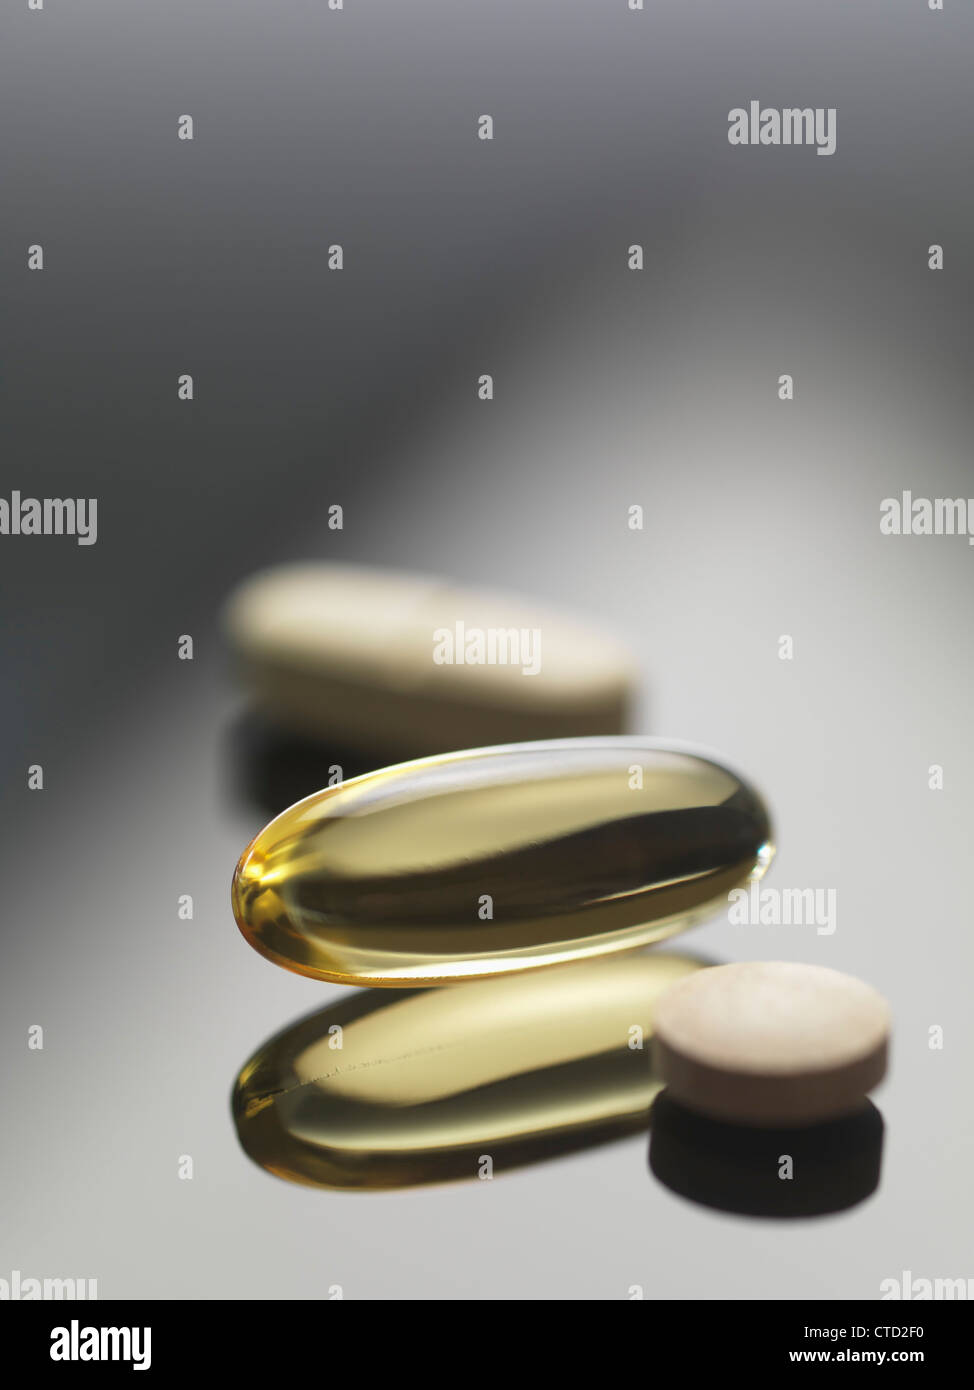 Dietary supplements - Stock Image